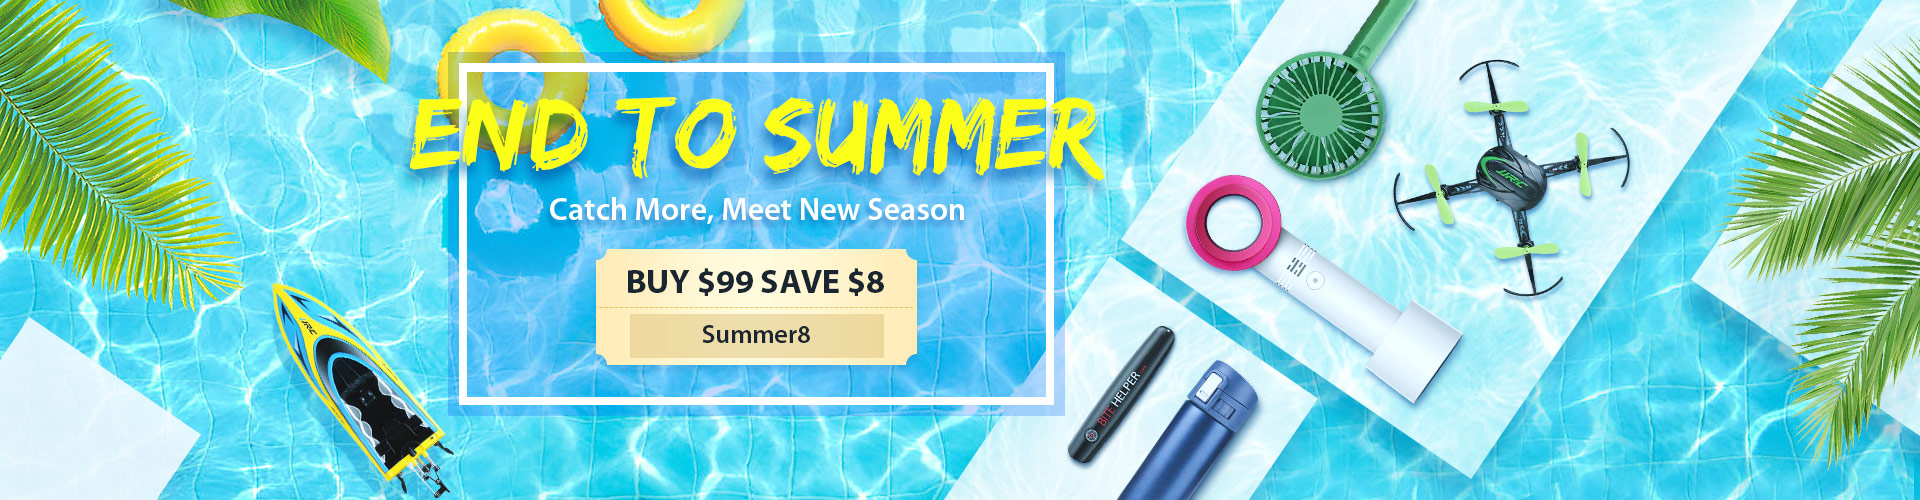 End To Summer, Buy $99 ...